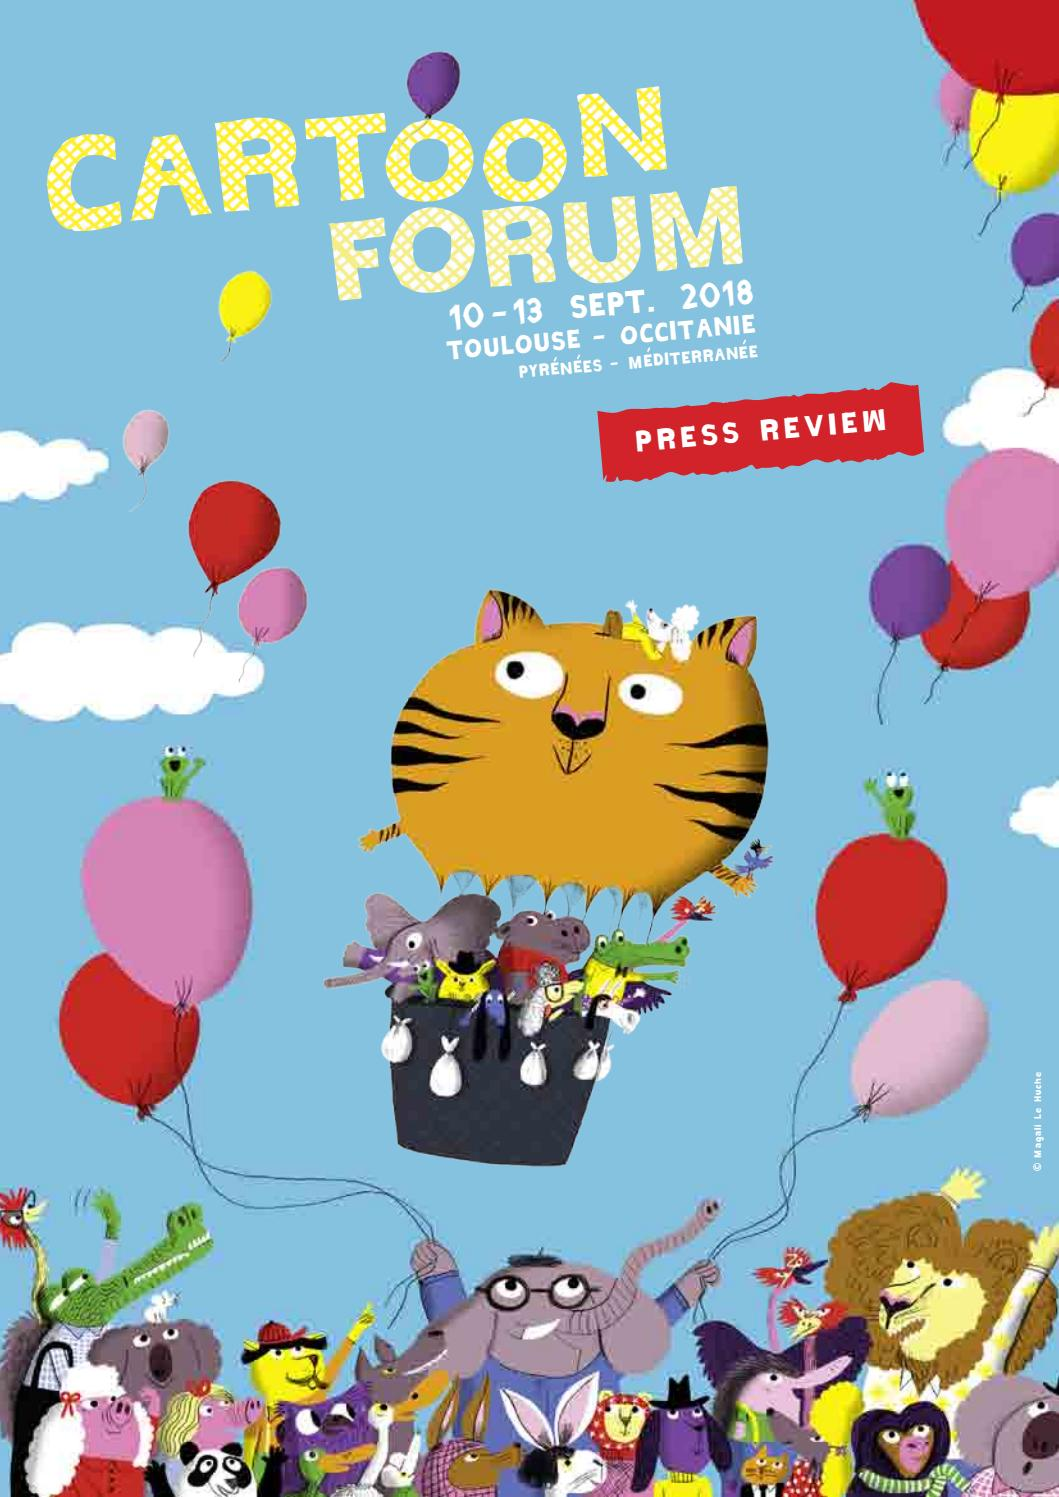 Cartoon Forum 2018 - Press Review by CARTOON - issuu fc3969fc85